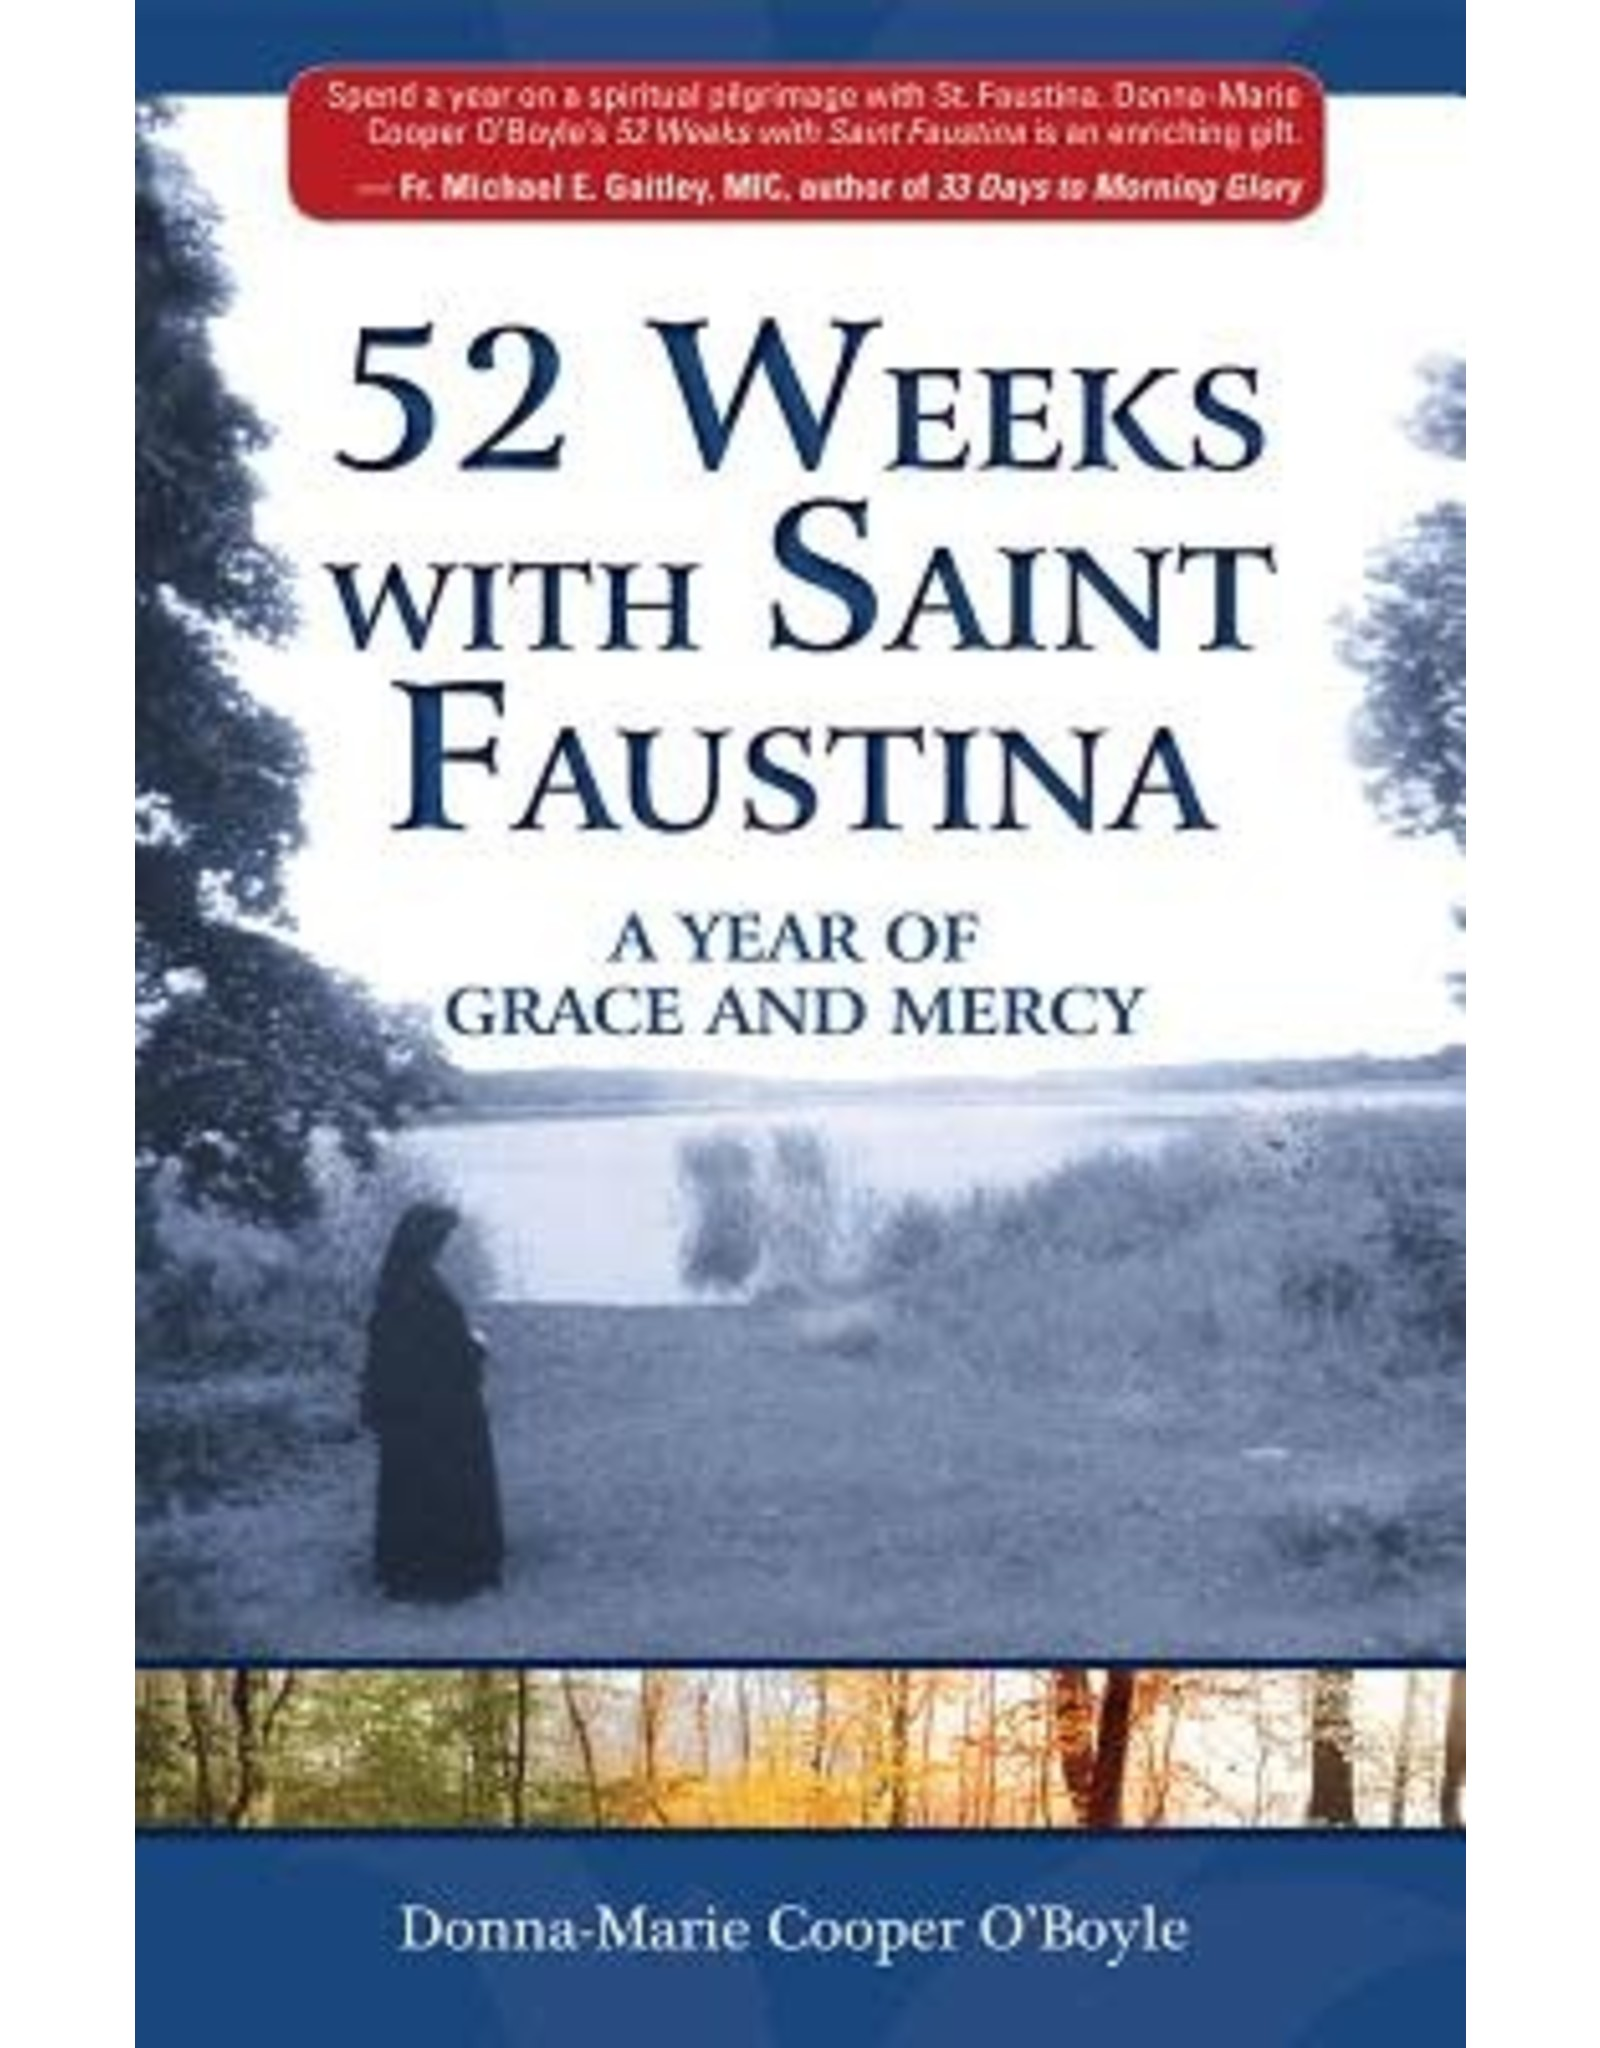 Association of Marian Helpers 52 Weeks with Saint Faustina: A Year of Grace and Mercy by Donna-Marie Cooper O'Boyle (Paperback)